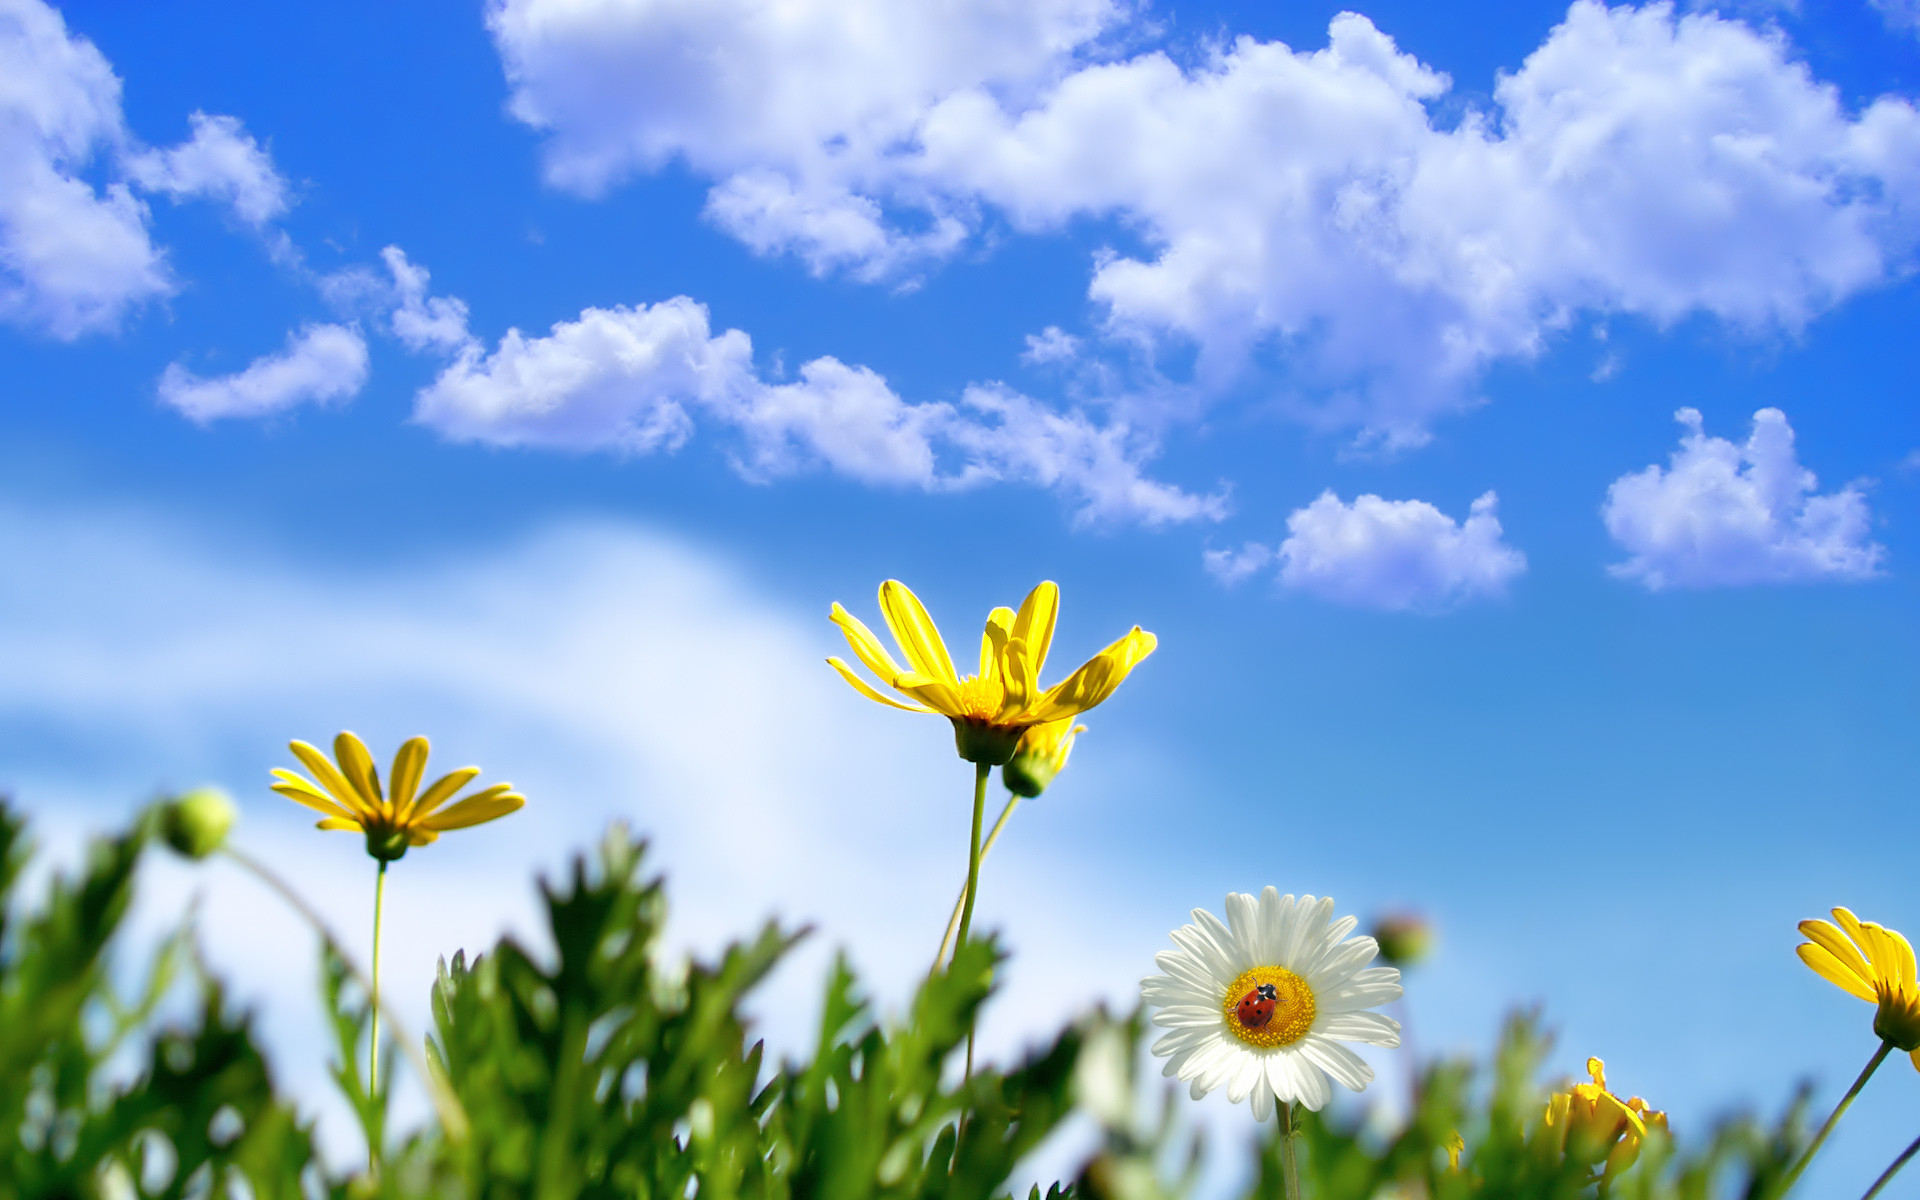 Sunny Springtime Wallpapers   HD Wallpapers